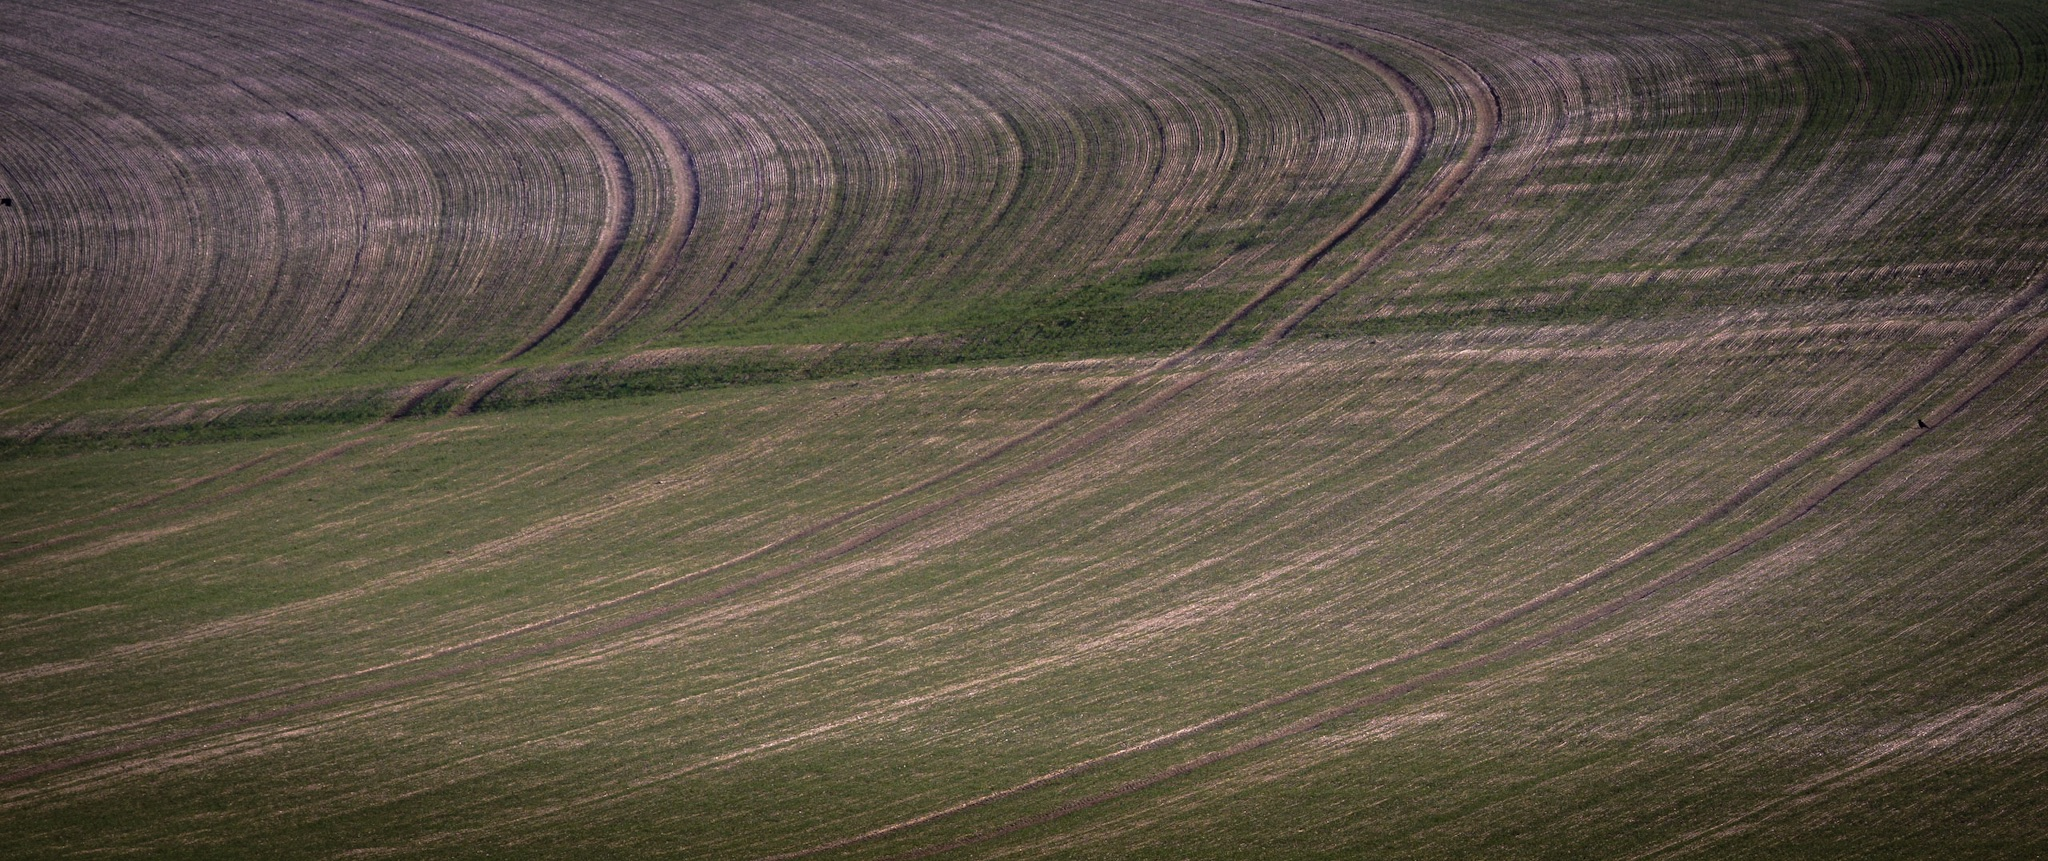 Textures in a field by Rick McEvoy - landscape photographer in Dorset